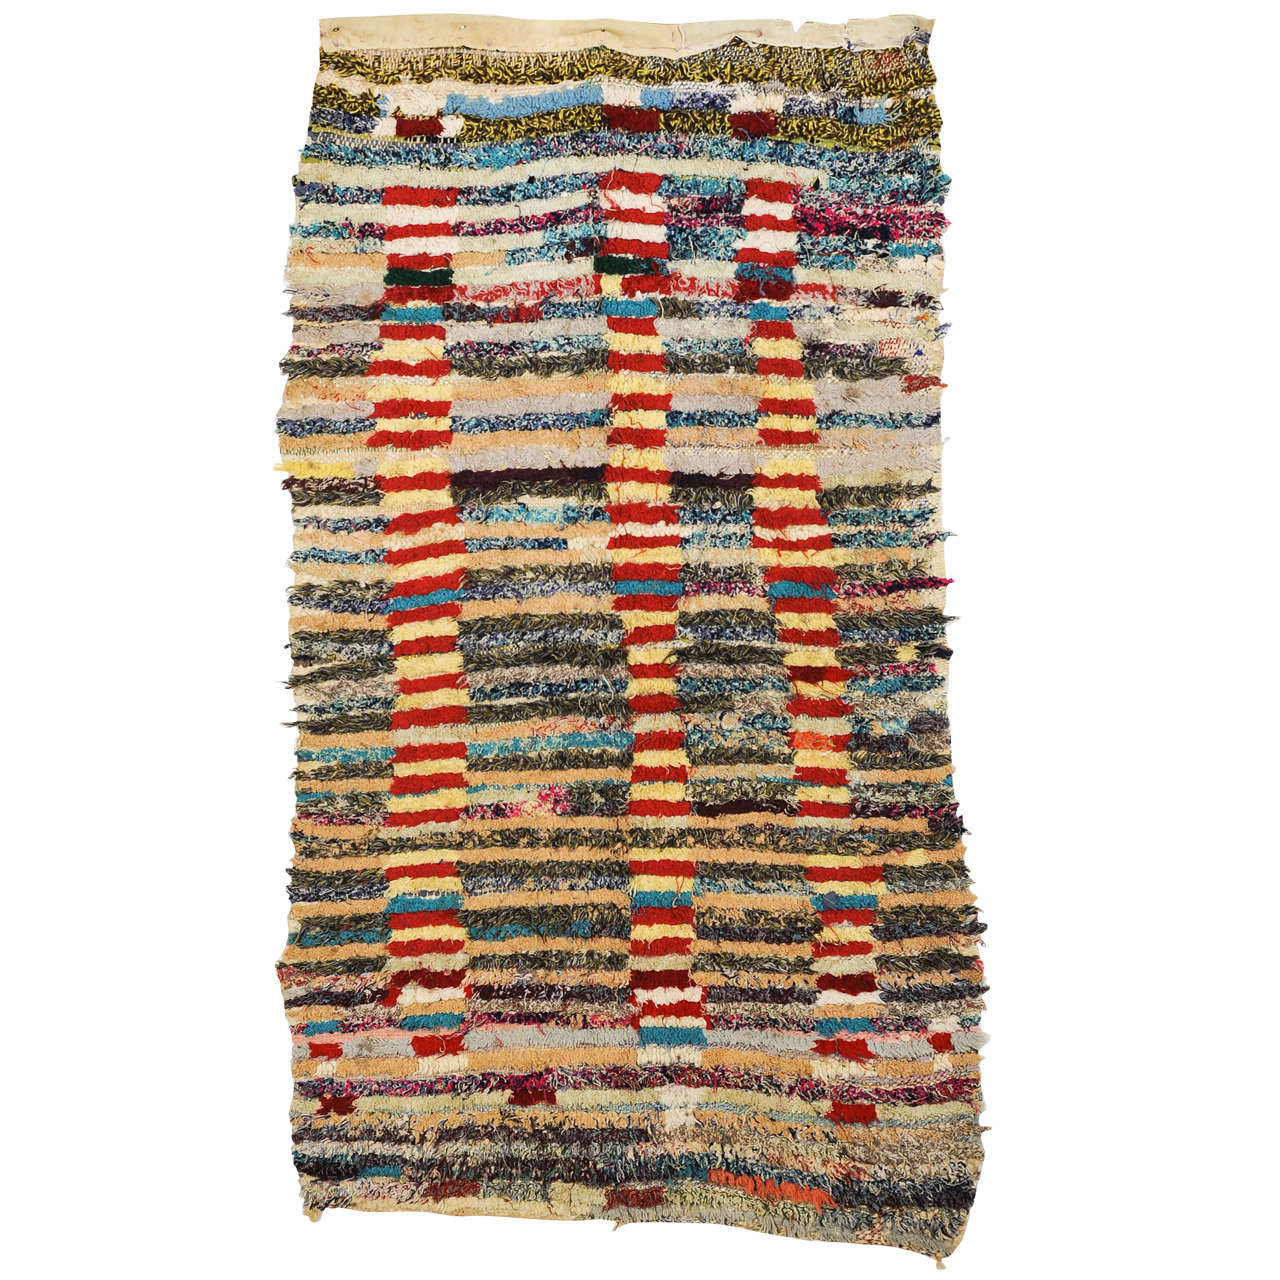 berber boucherouite rug for sale at 1stdibs. Black Bedroom Furniture Sets. Home Design Ideas